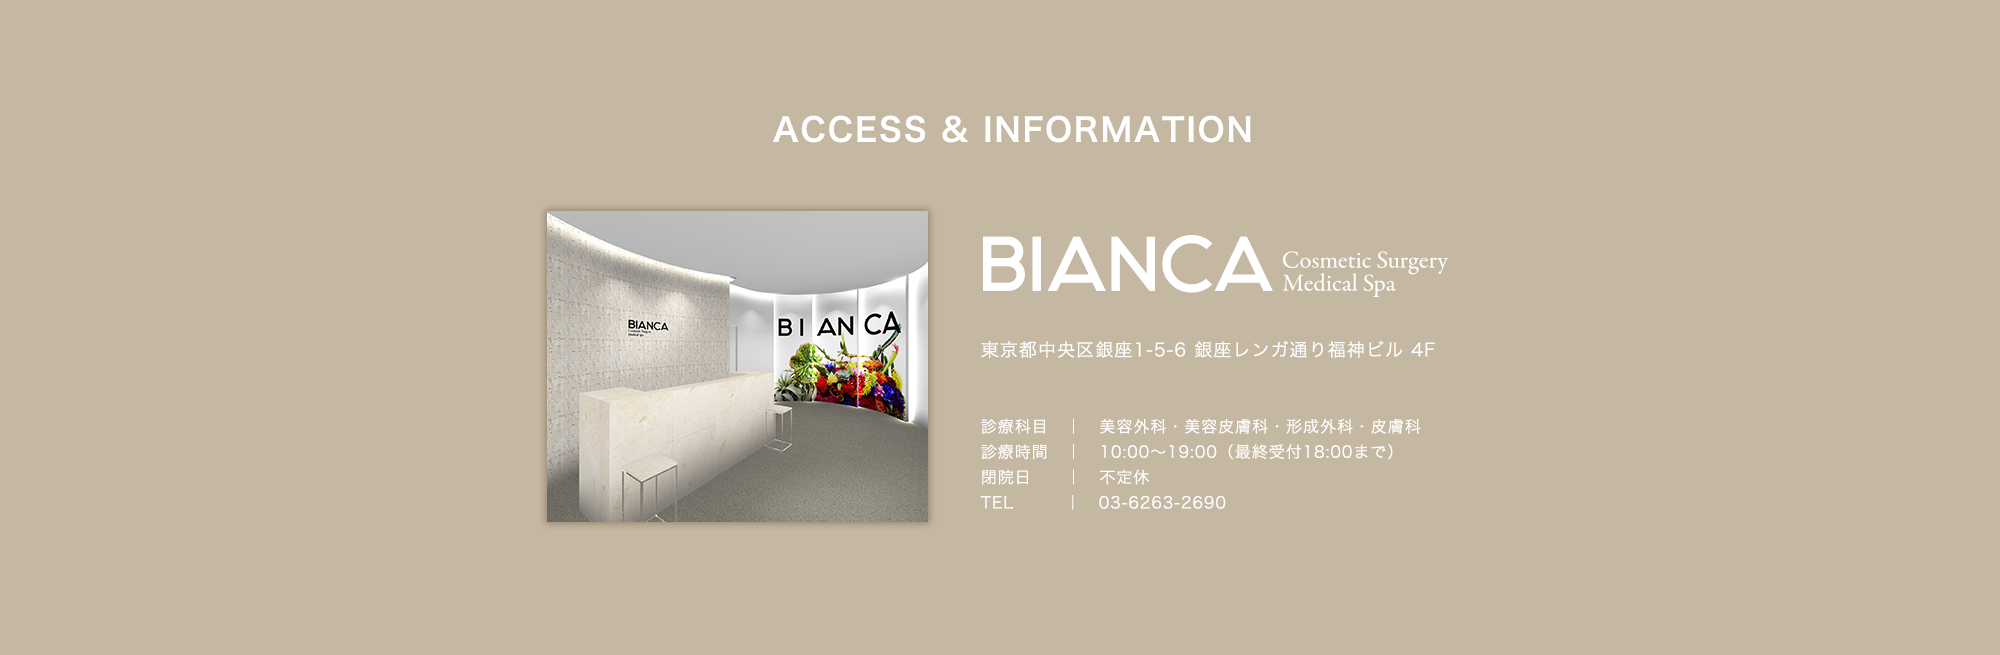 ACCESS&INFORMATION